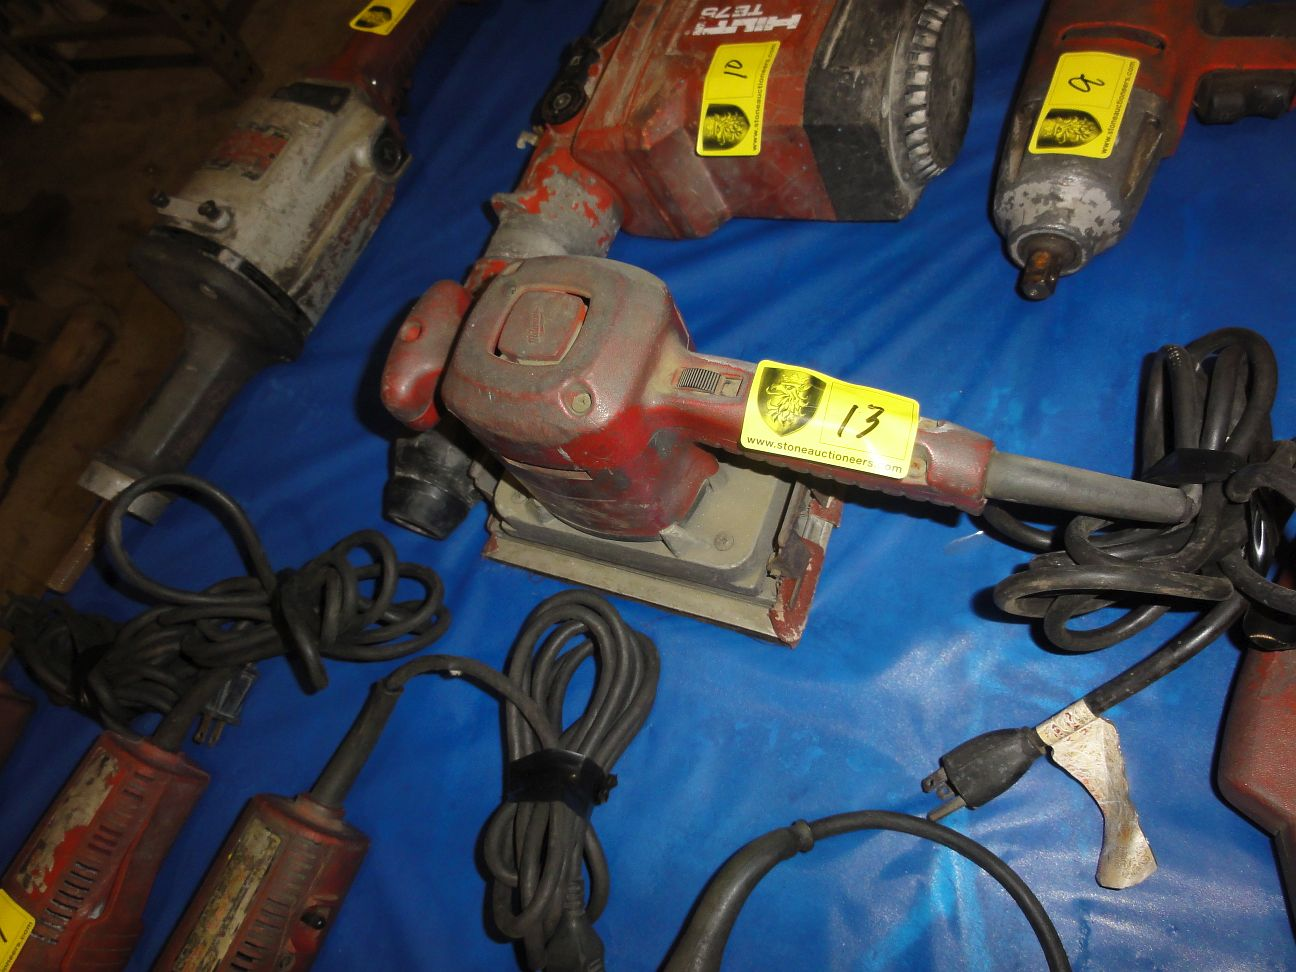 Lot 13 - Milwaukee Sander